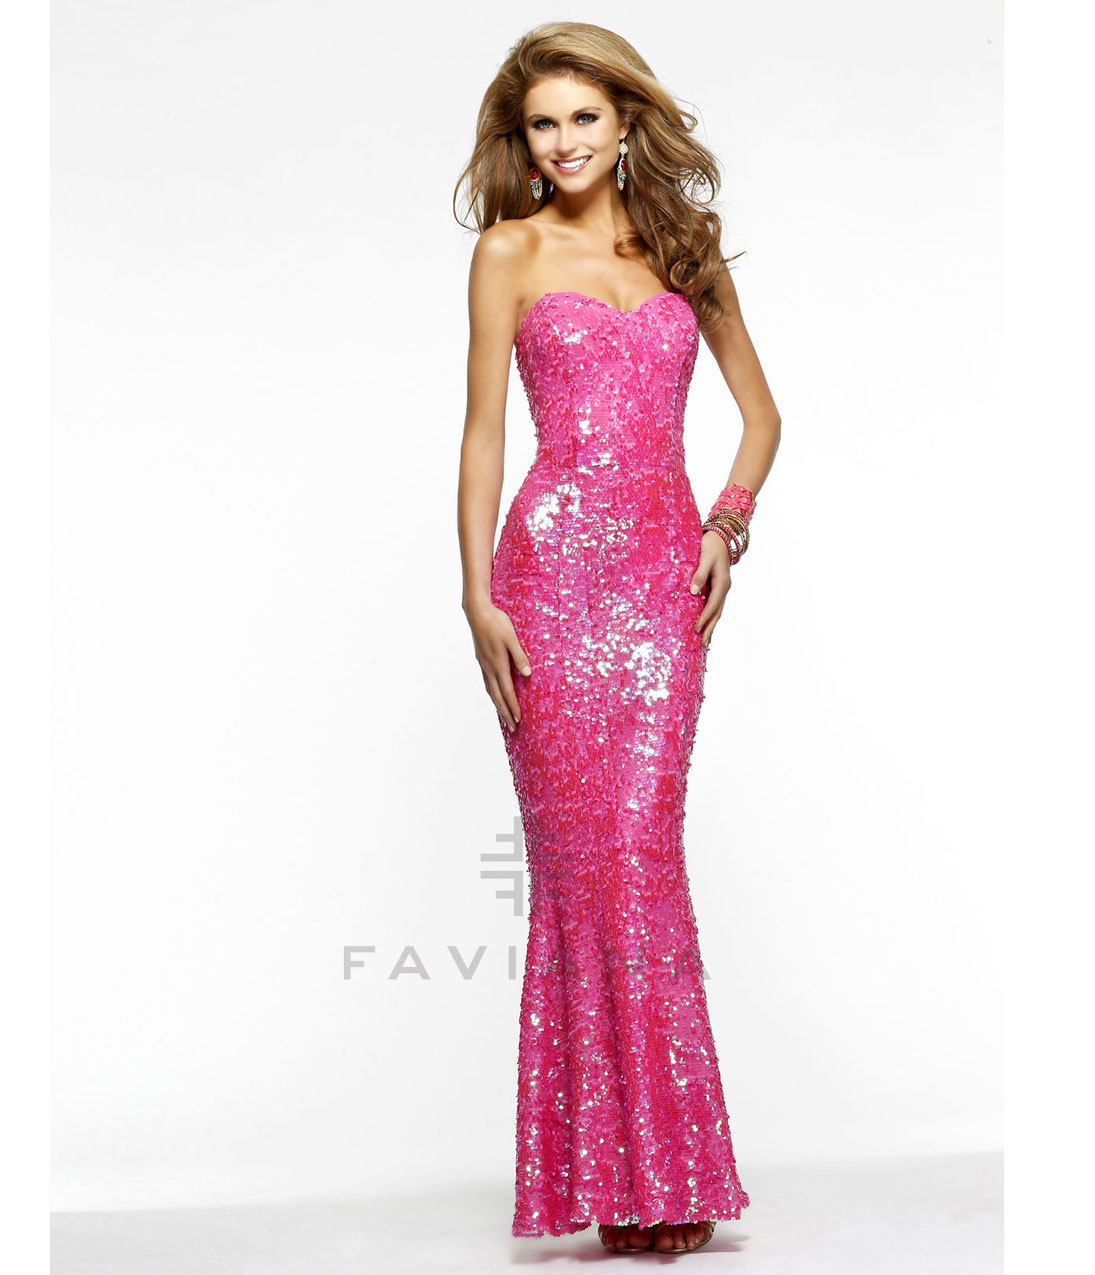 Formal Dresses Sparkly - Clothing Brand Reviews - Dresses Ask